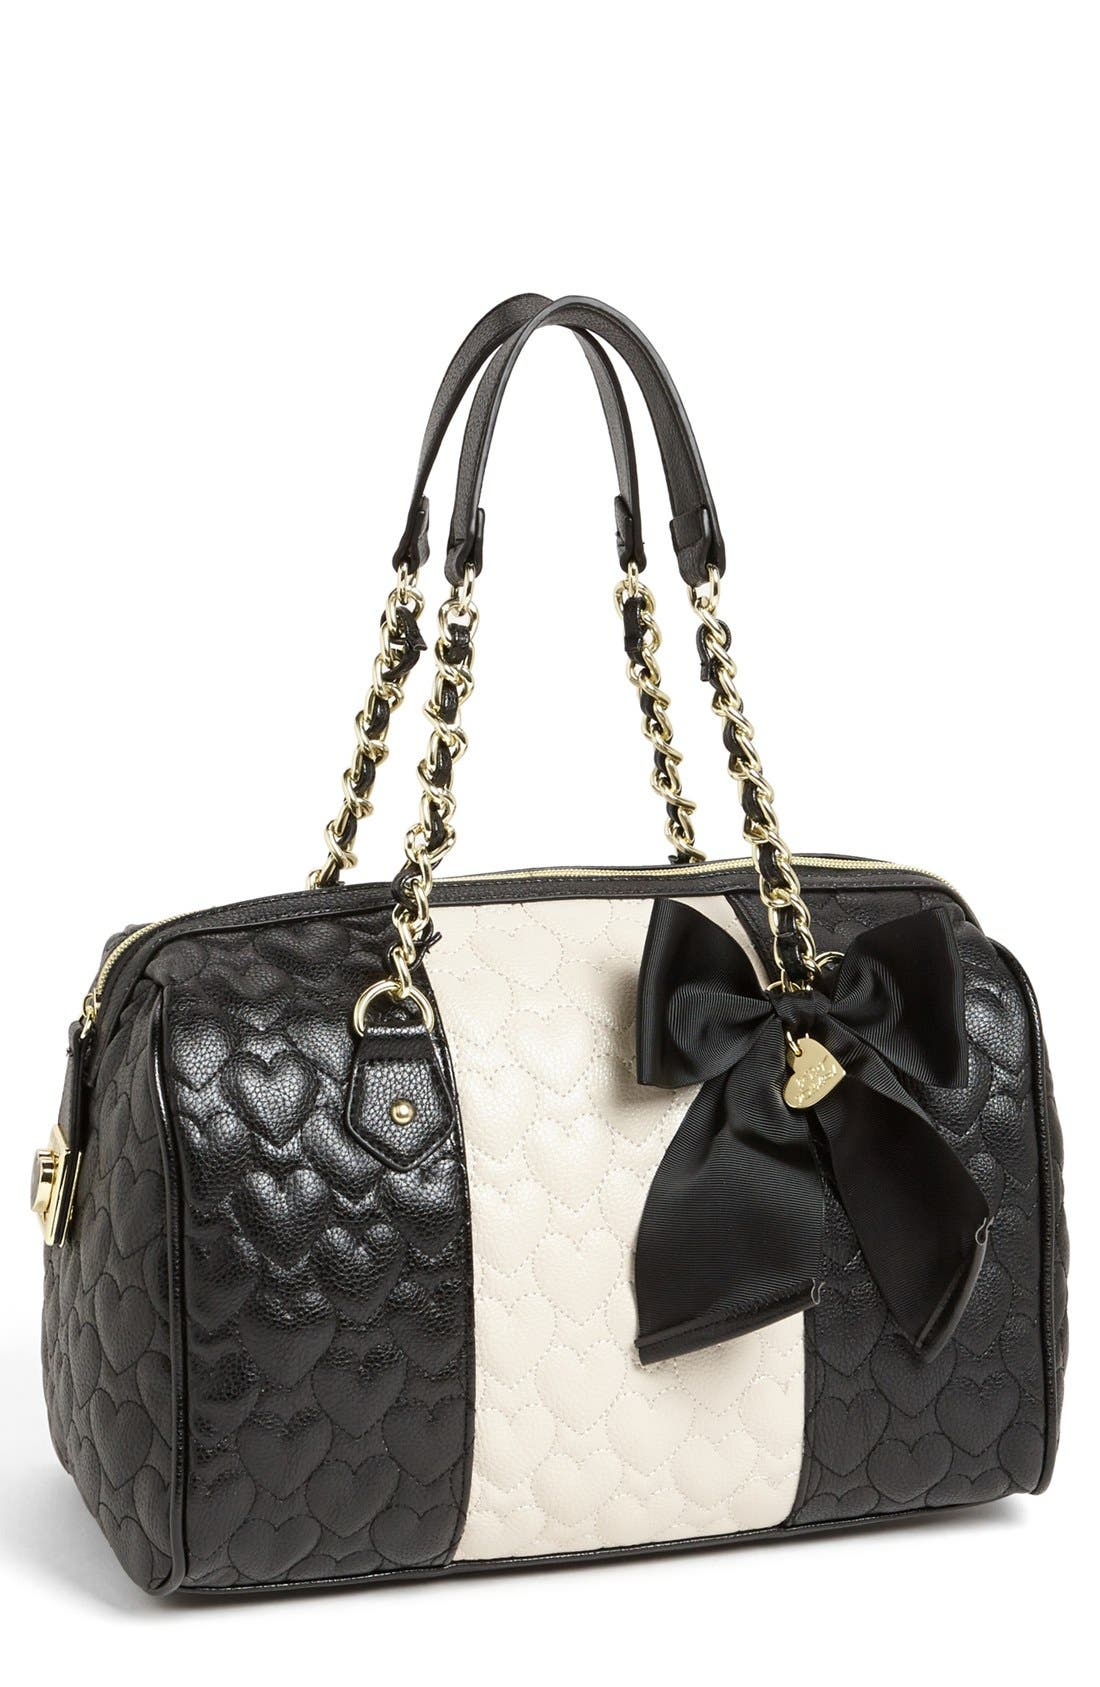 Main Image - Betsey Johnson 'Be My Wonderful' Satchel